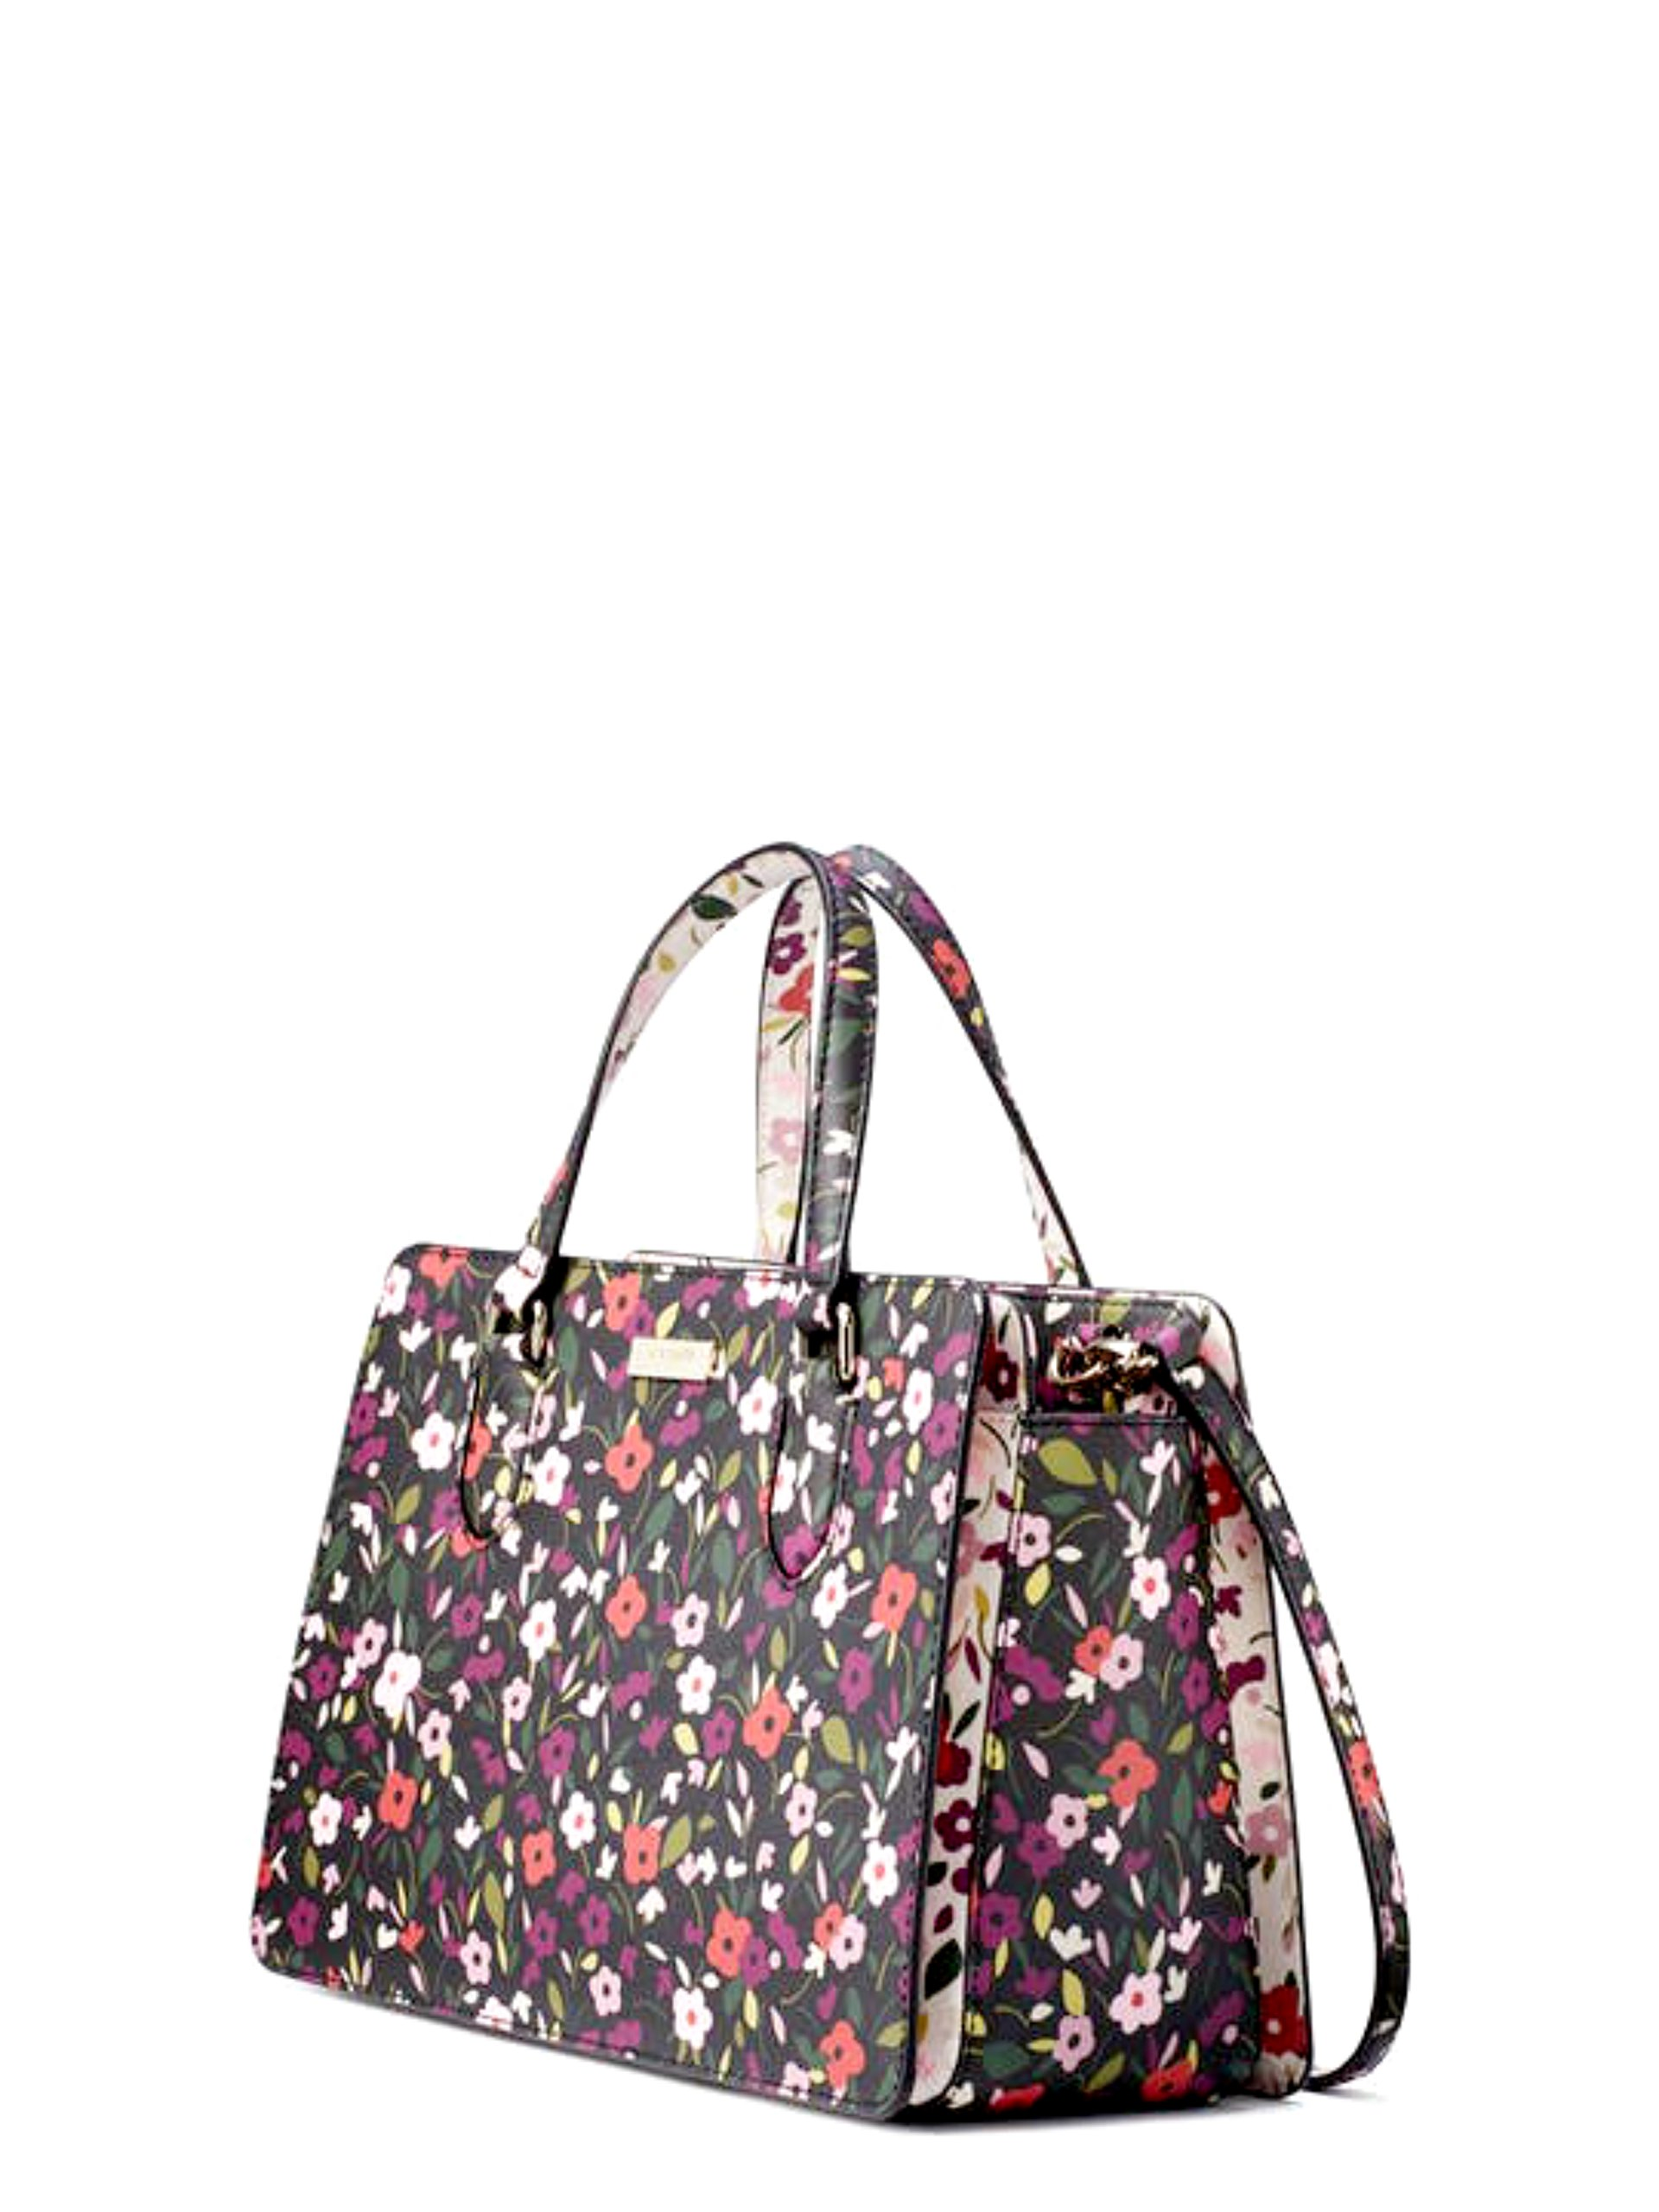 Kate Spade Laurel Way Boho Floral Reese Women's Leather Handbag Satchel